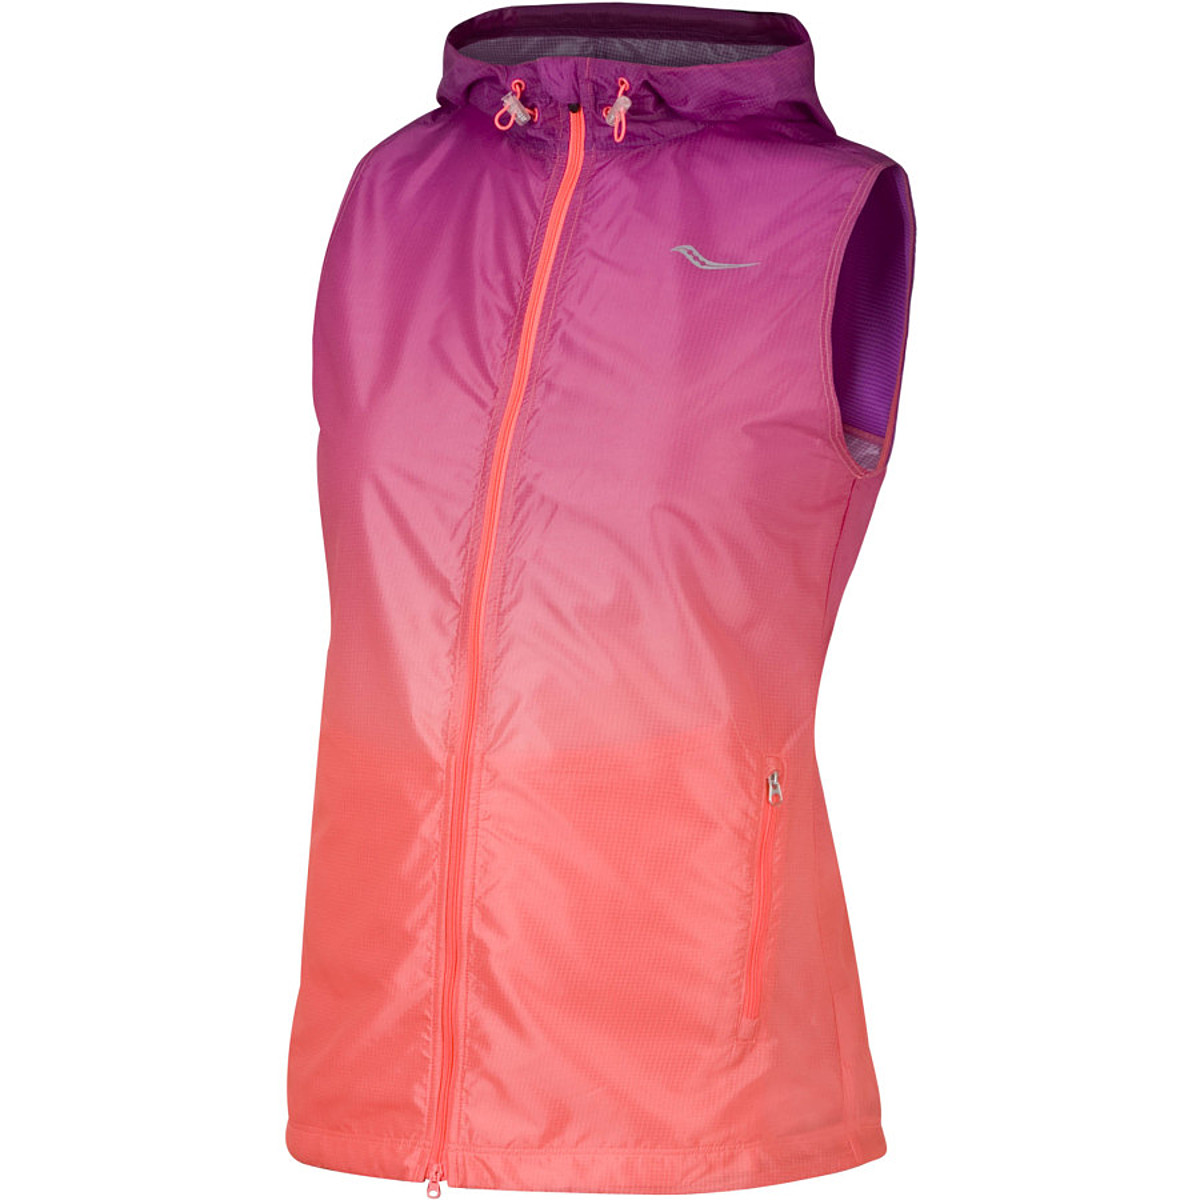 Saucony Packable Fade Vest